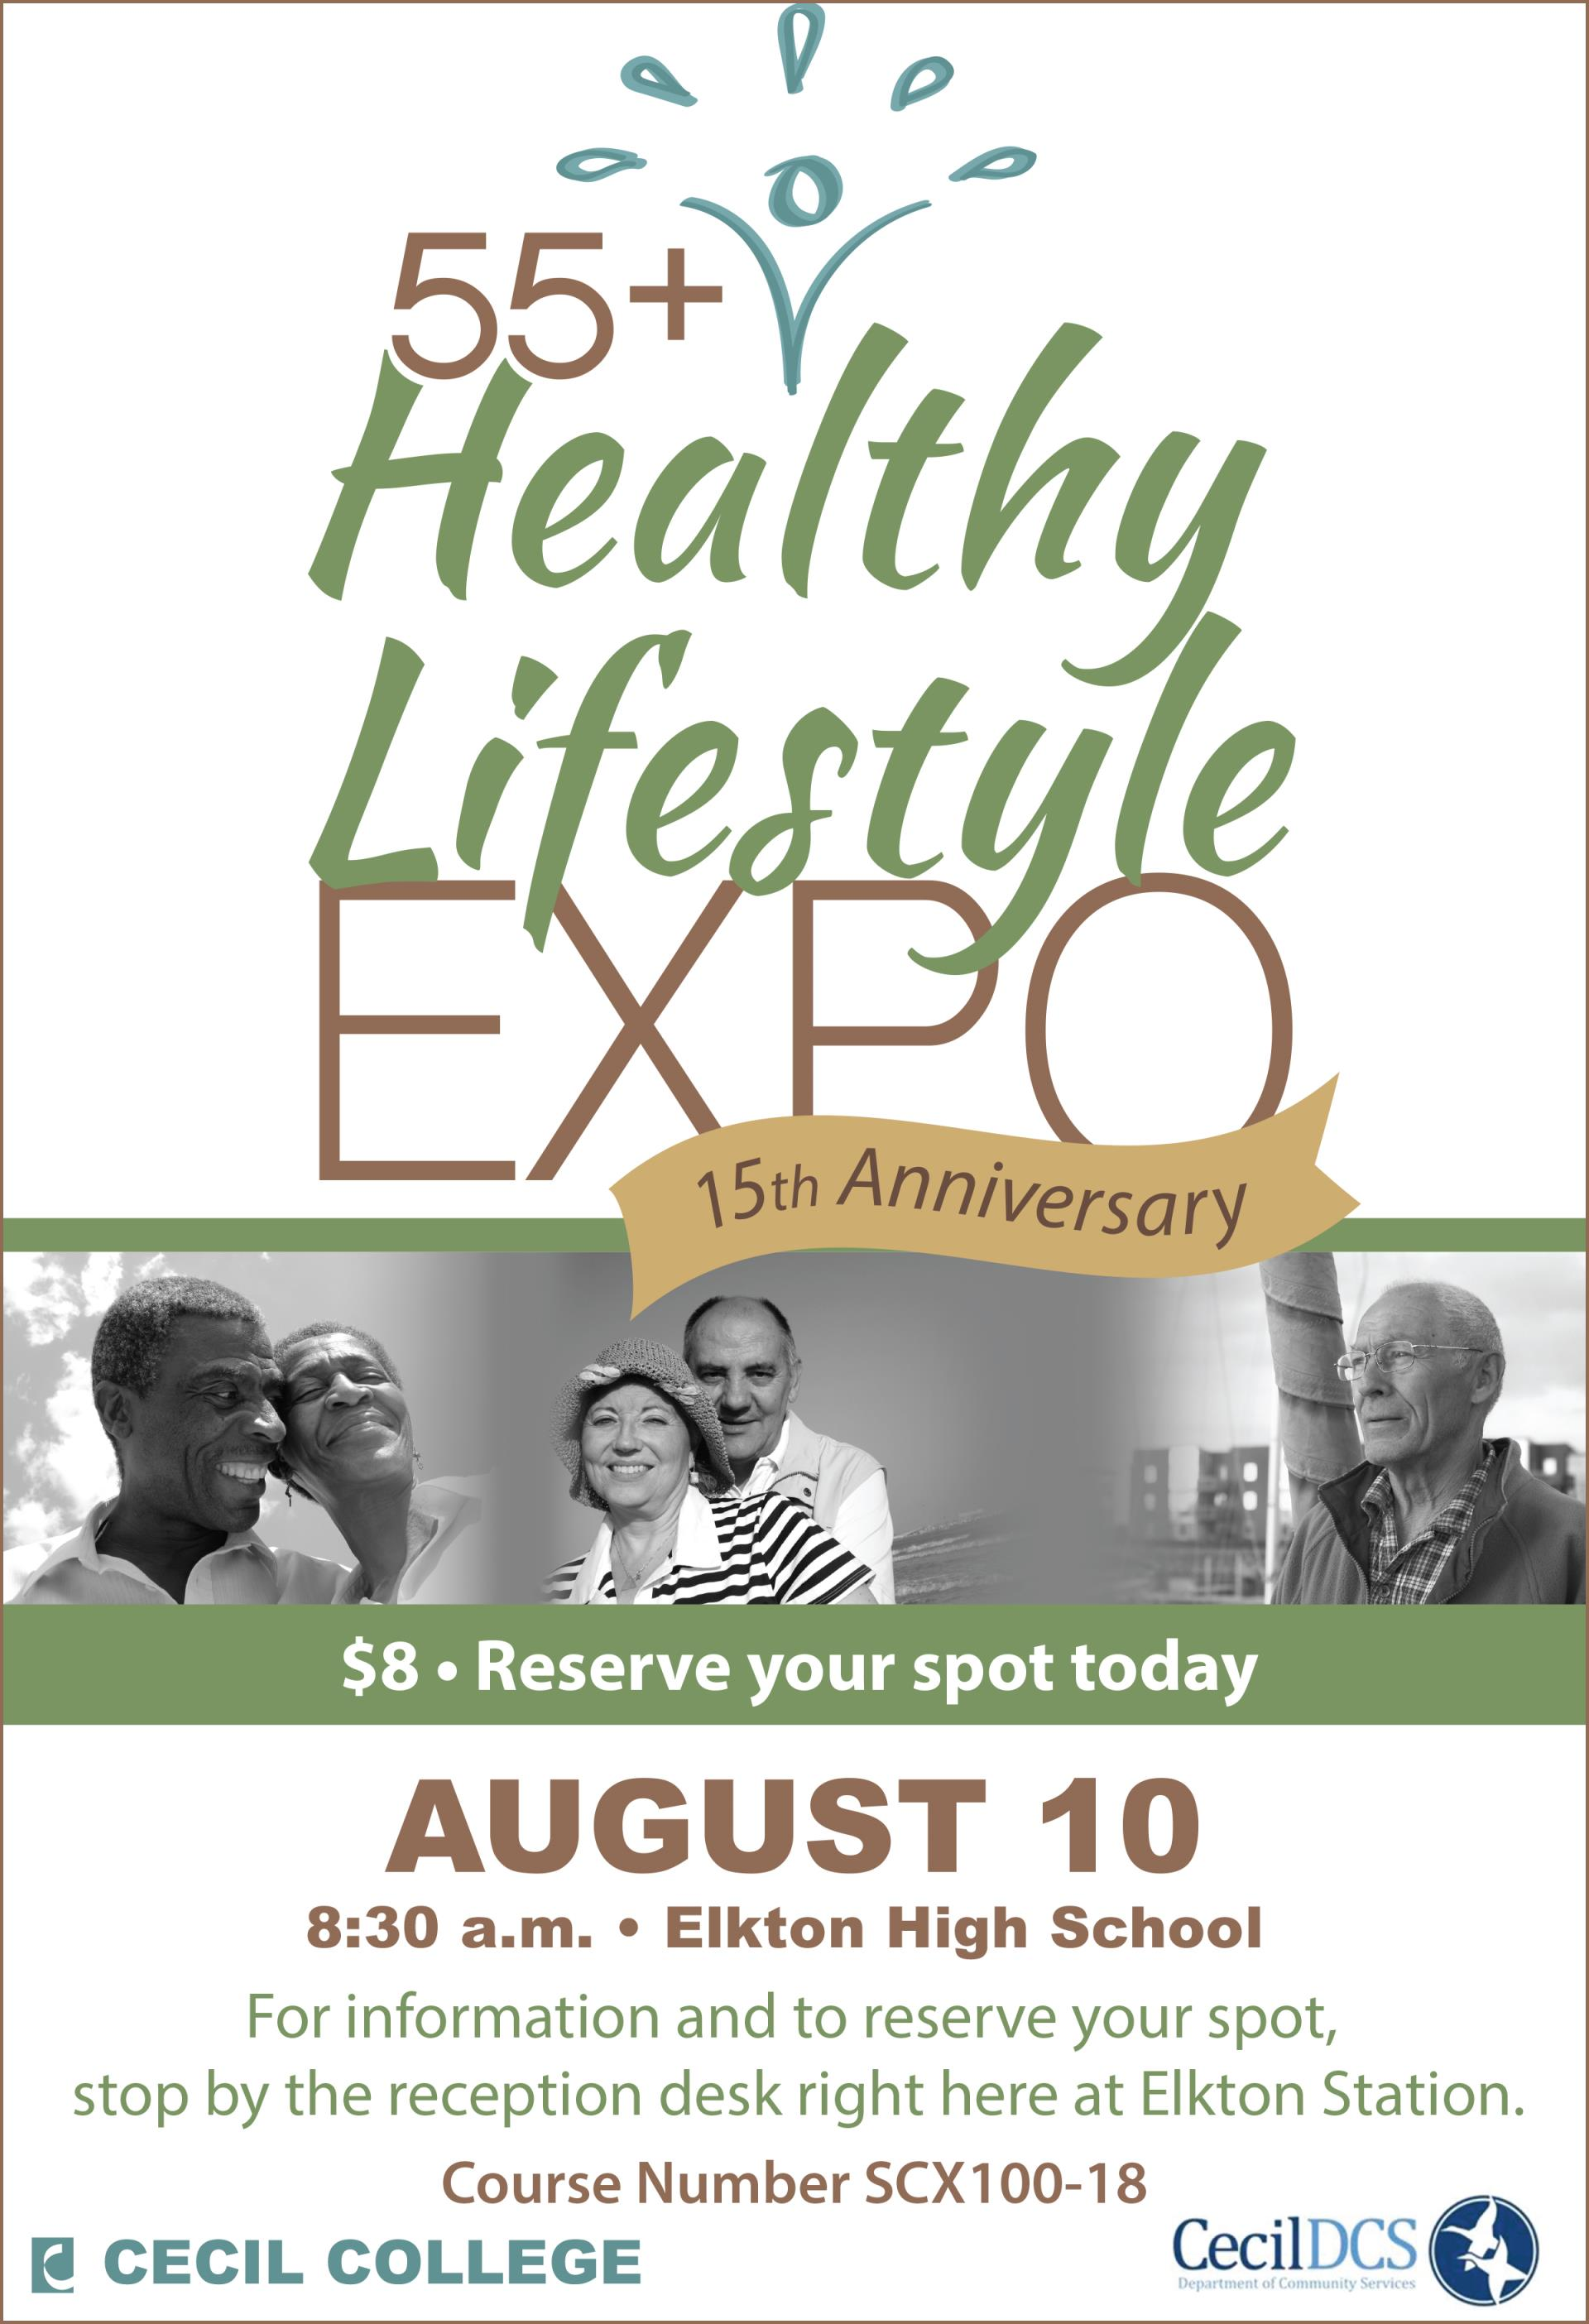 55+ Healthy Lifestyle Expo